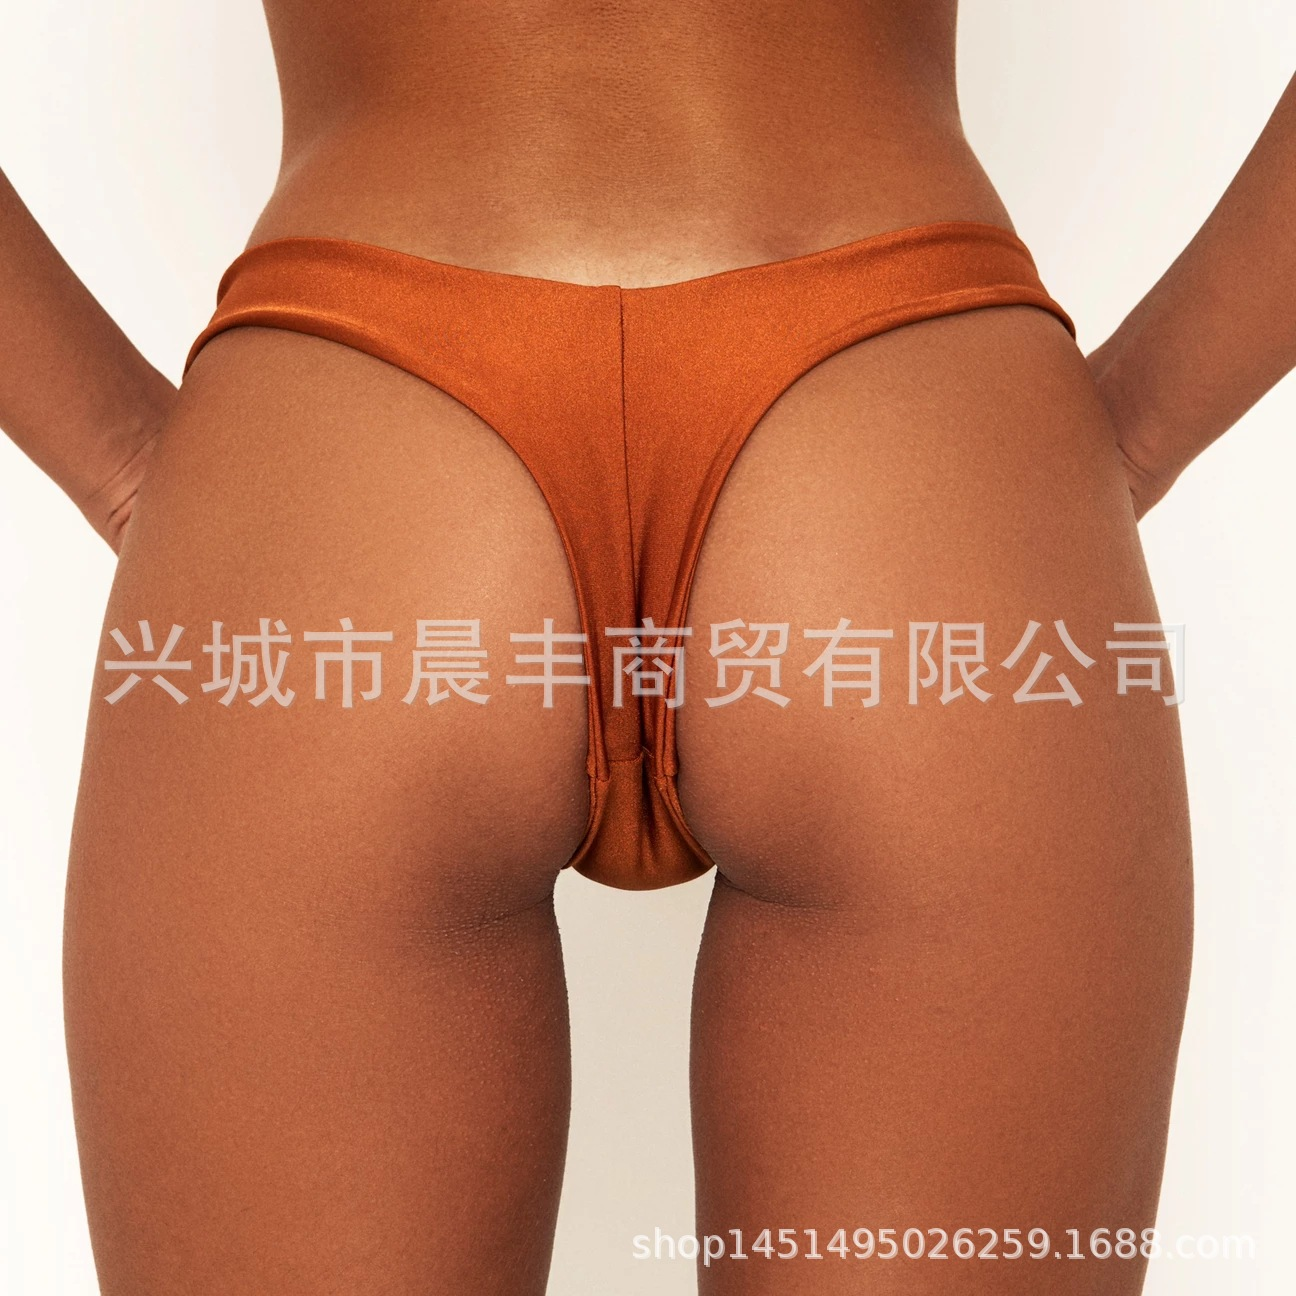 Plant Source 2020 Hot Selling Sexy Bikini Bathing Suit Solid Color Colorful Low-Rise Beach Mini Underpants